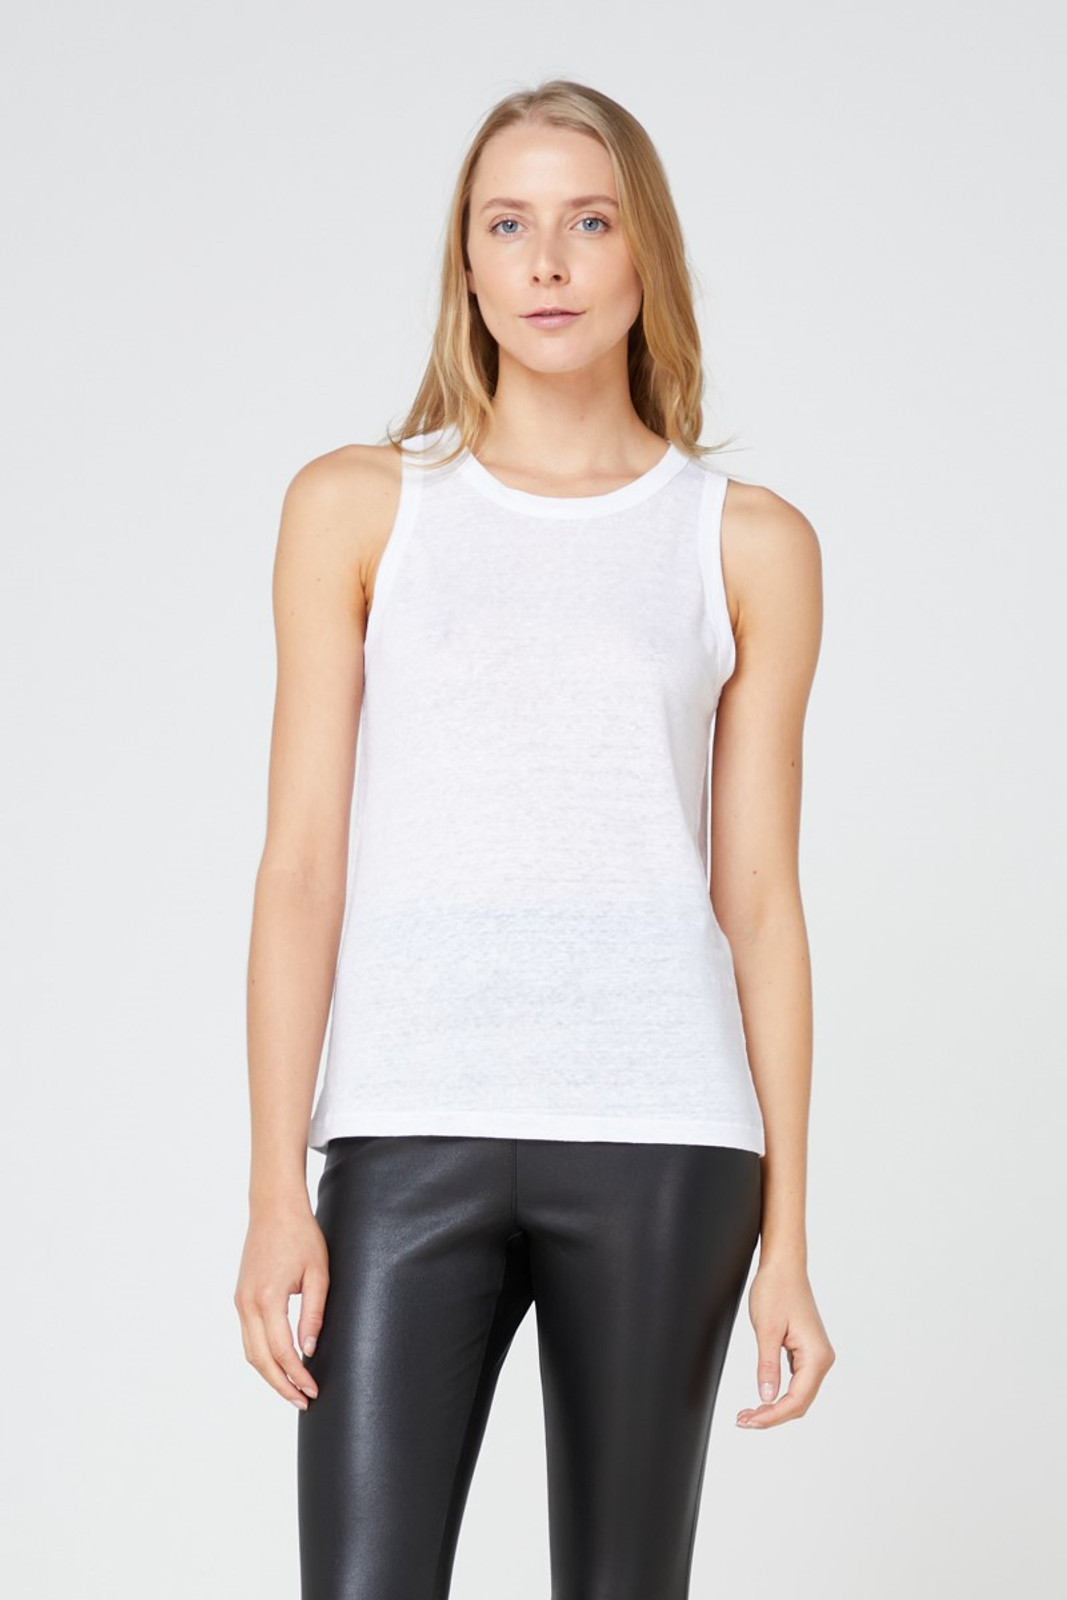 Elka Collective EC Linen Tank 2.0 White  1